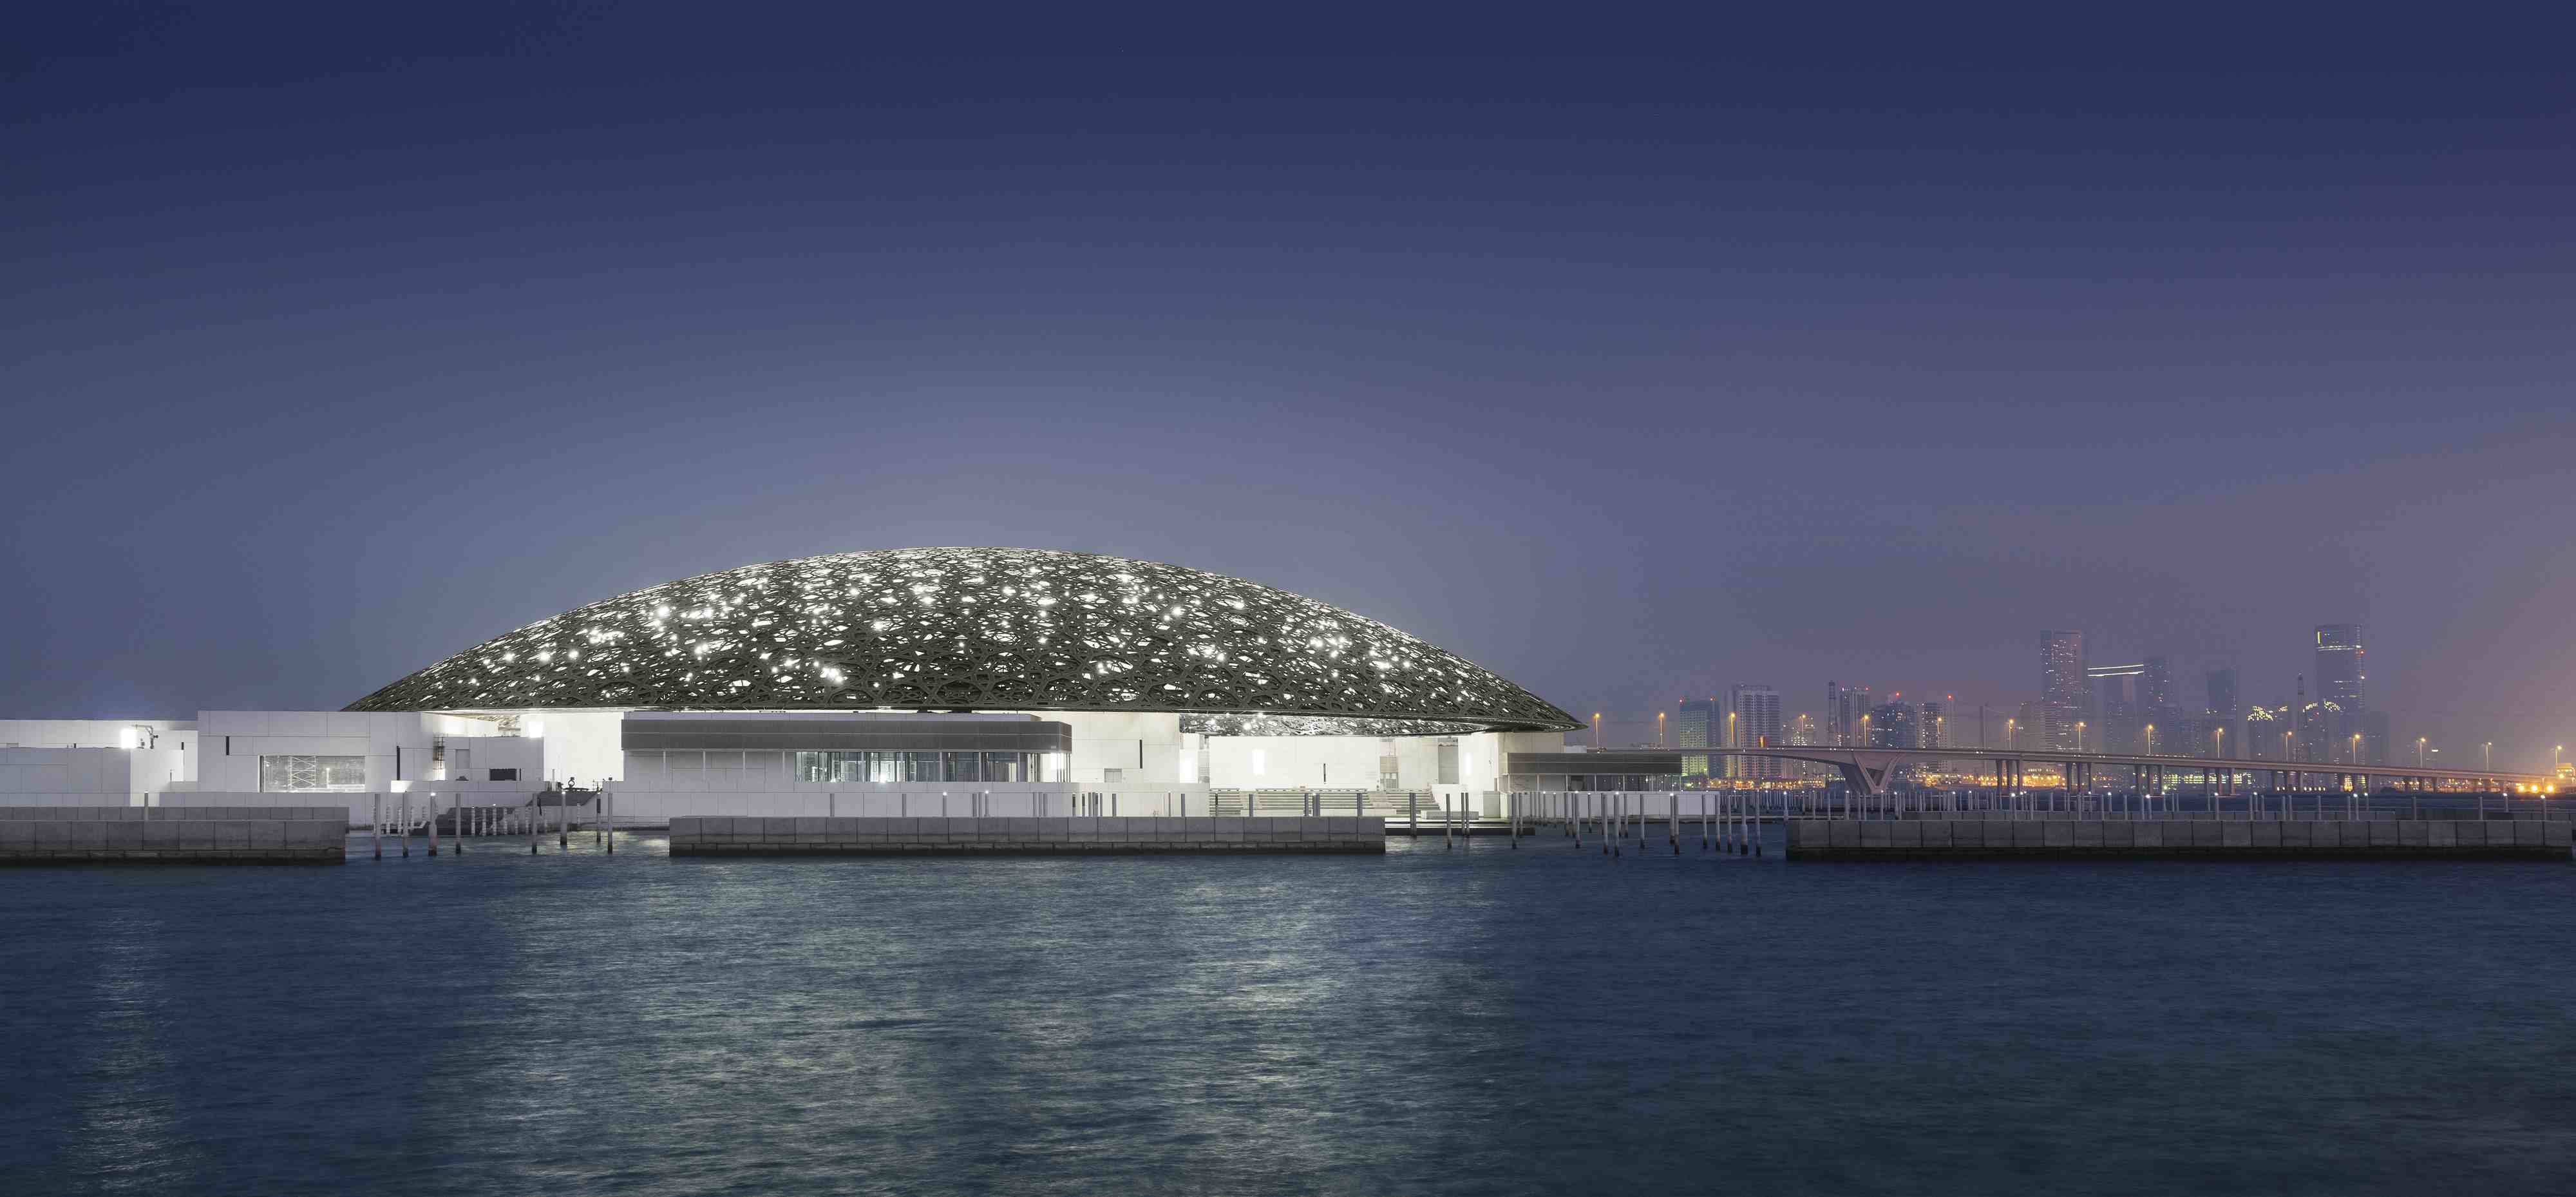 Rembrandt, Vermeer & the Dutch Golden Age Exhibition at Louvre Abu Dhabi